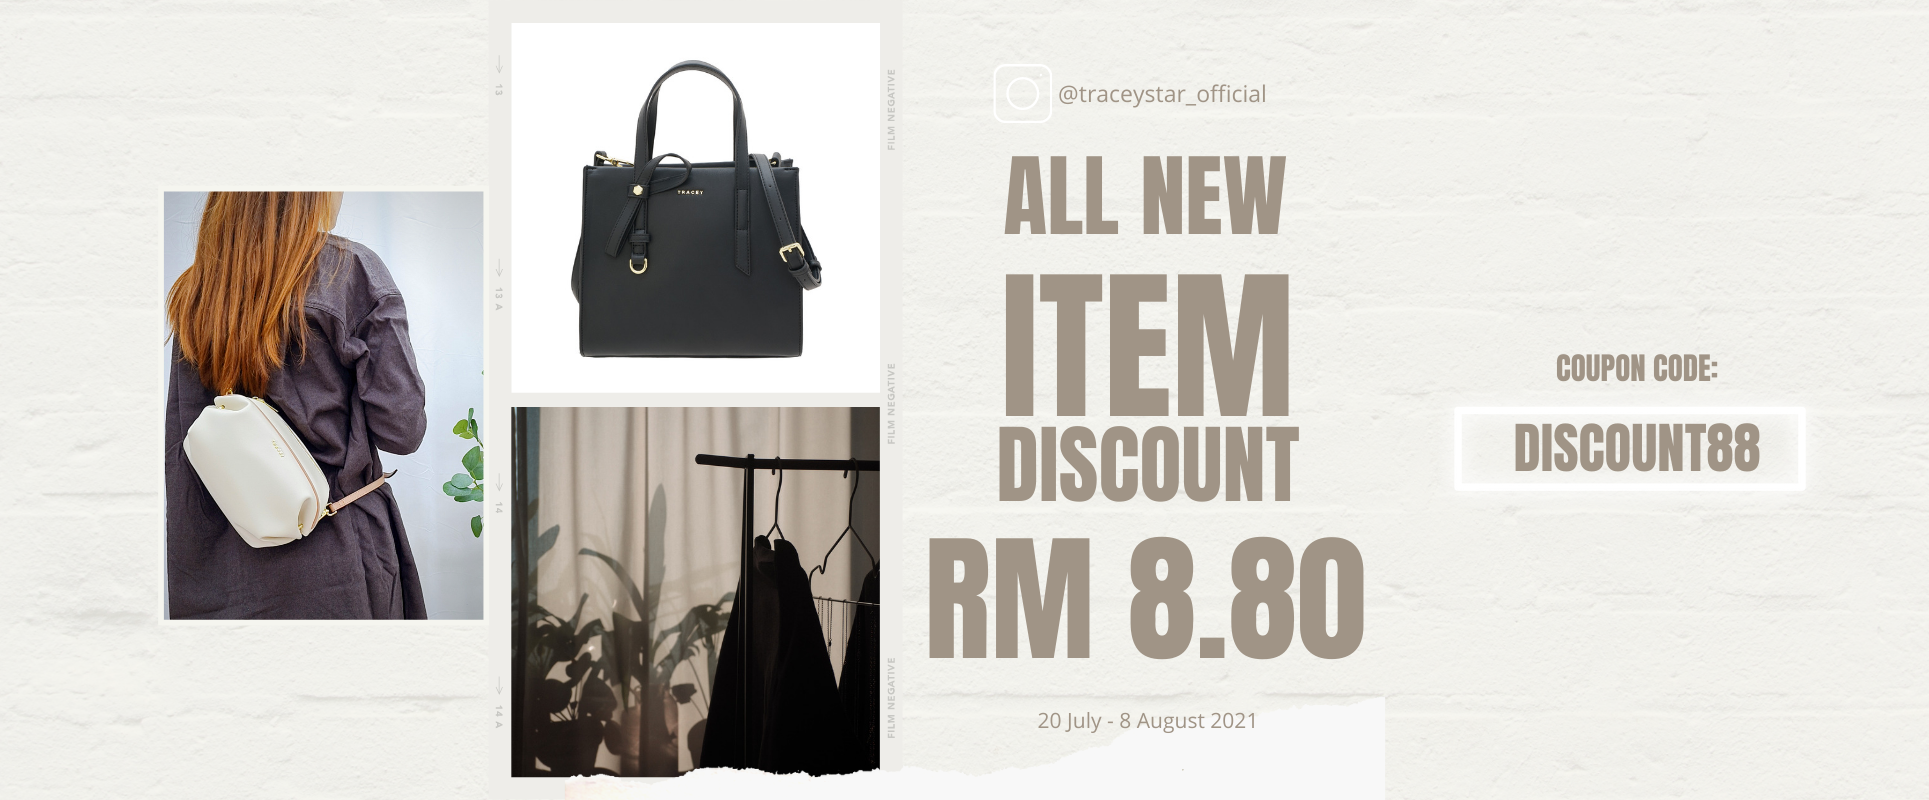 Discount RM8.80